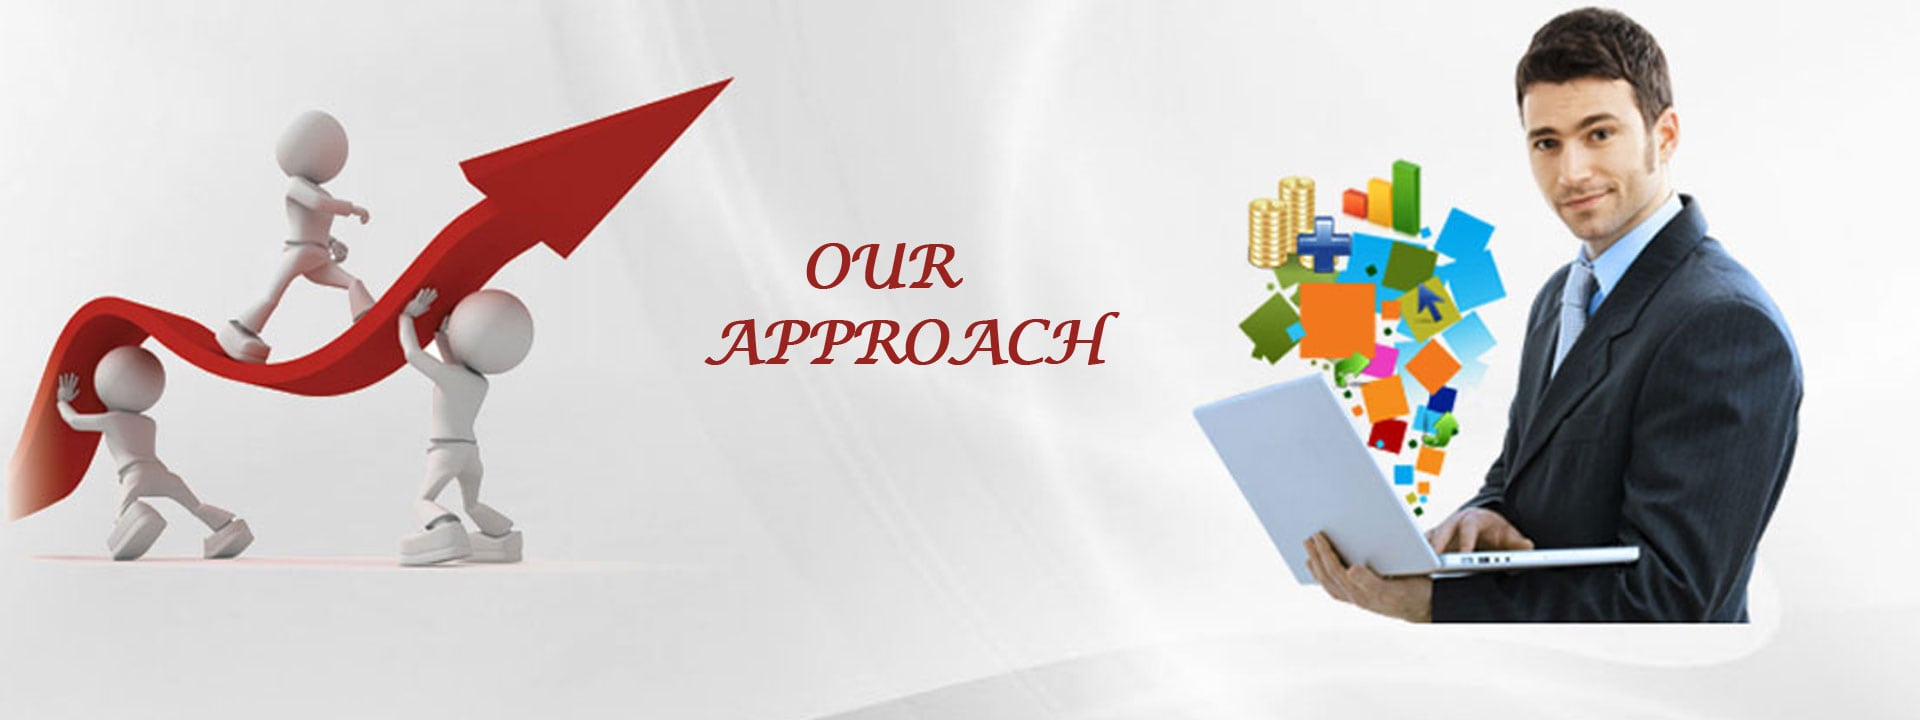 our-approach3.jpg?time=1563399752